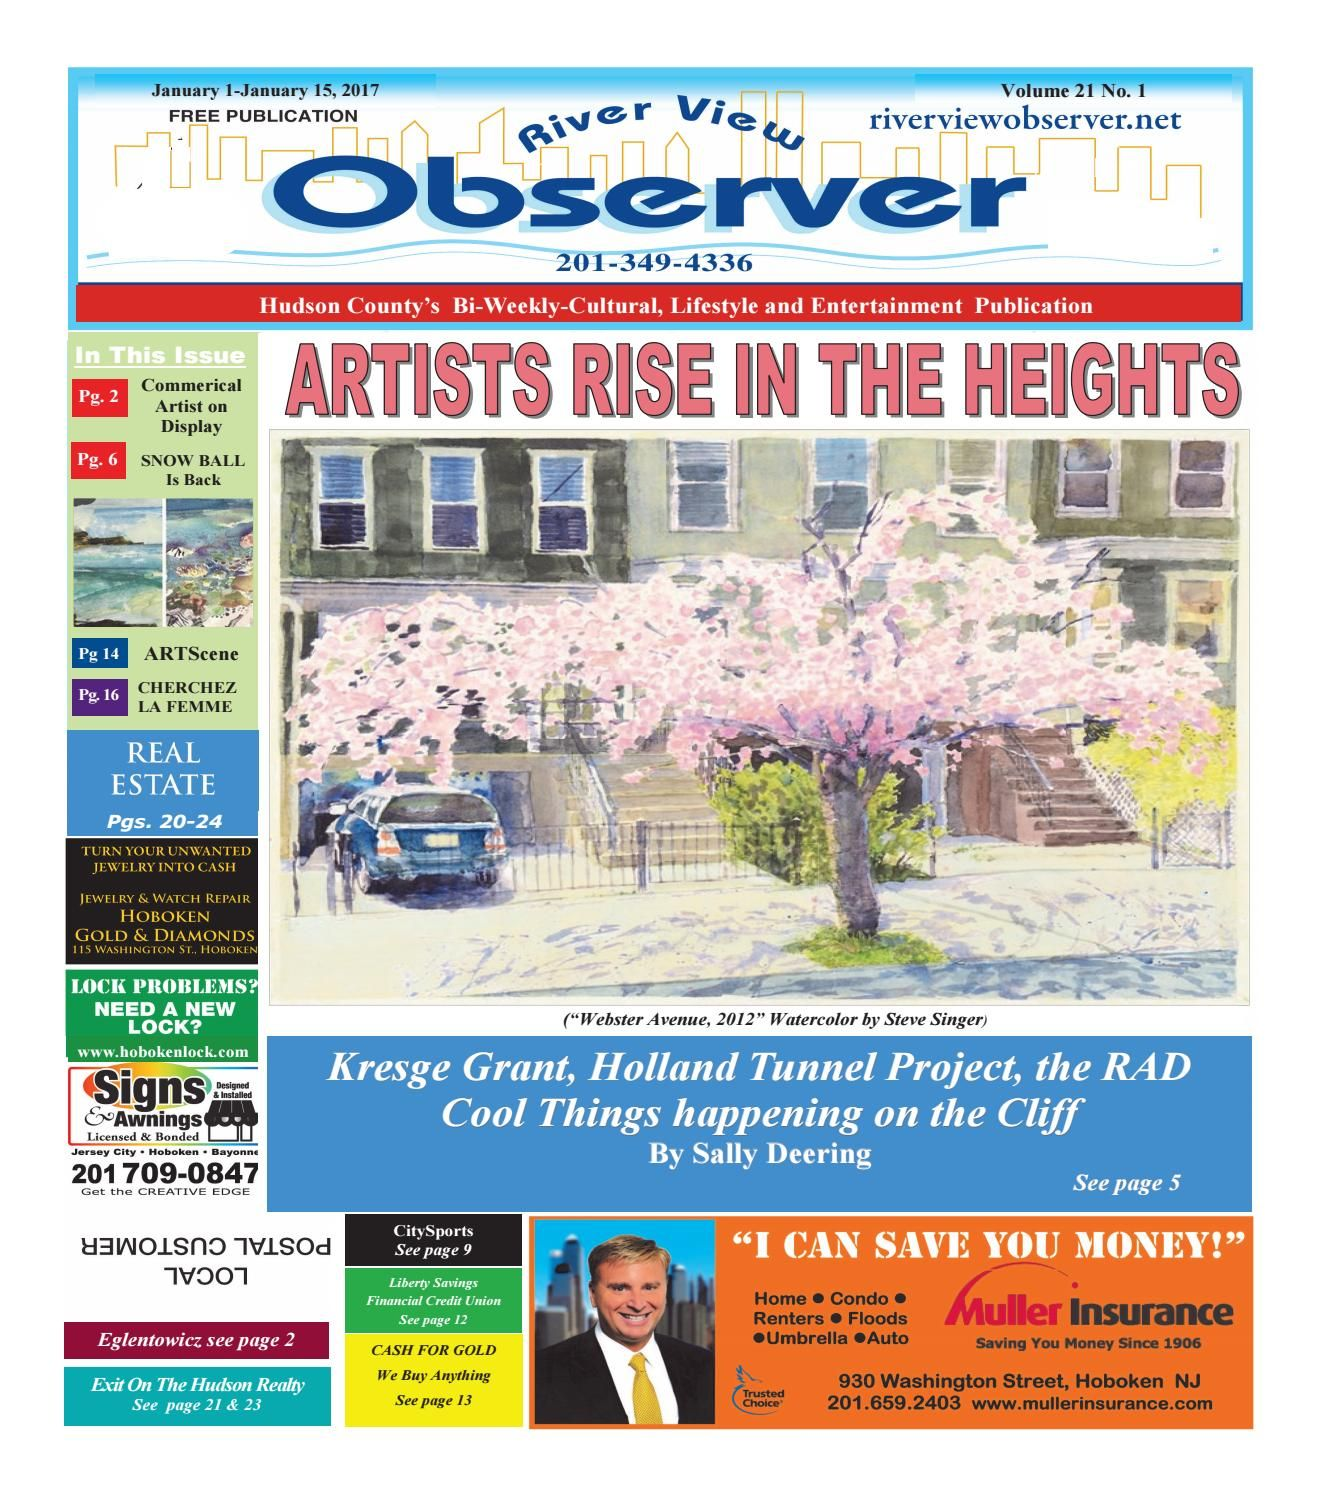 2017 Jan1 15 River View Observr Jersey City A Great Place To